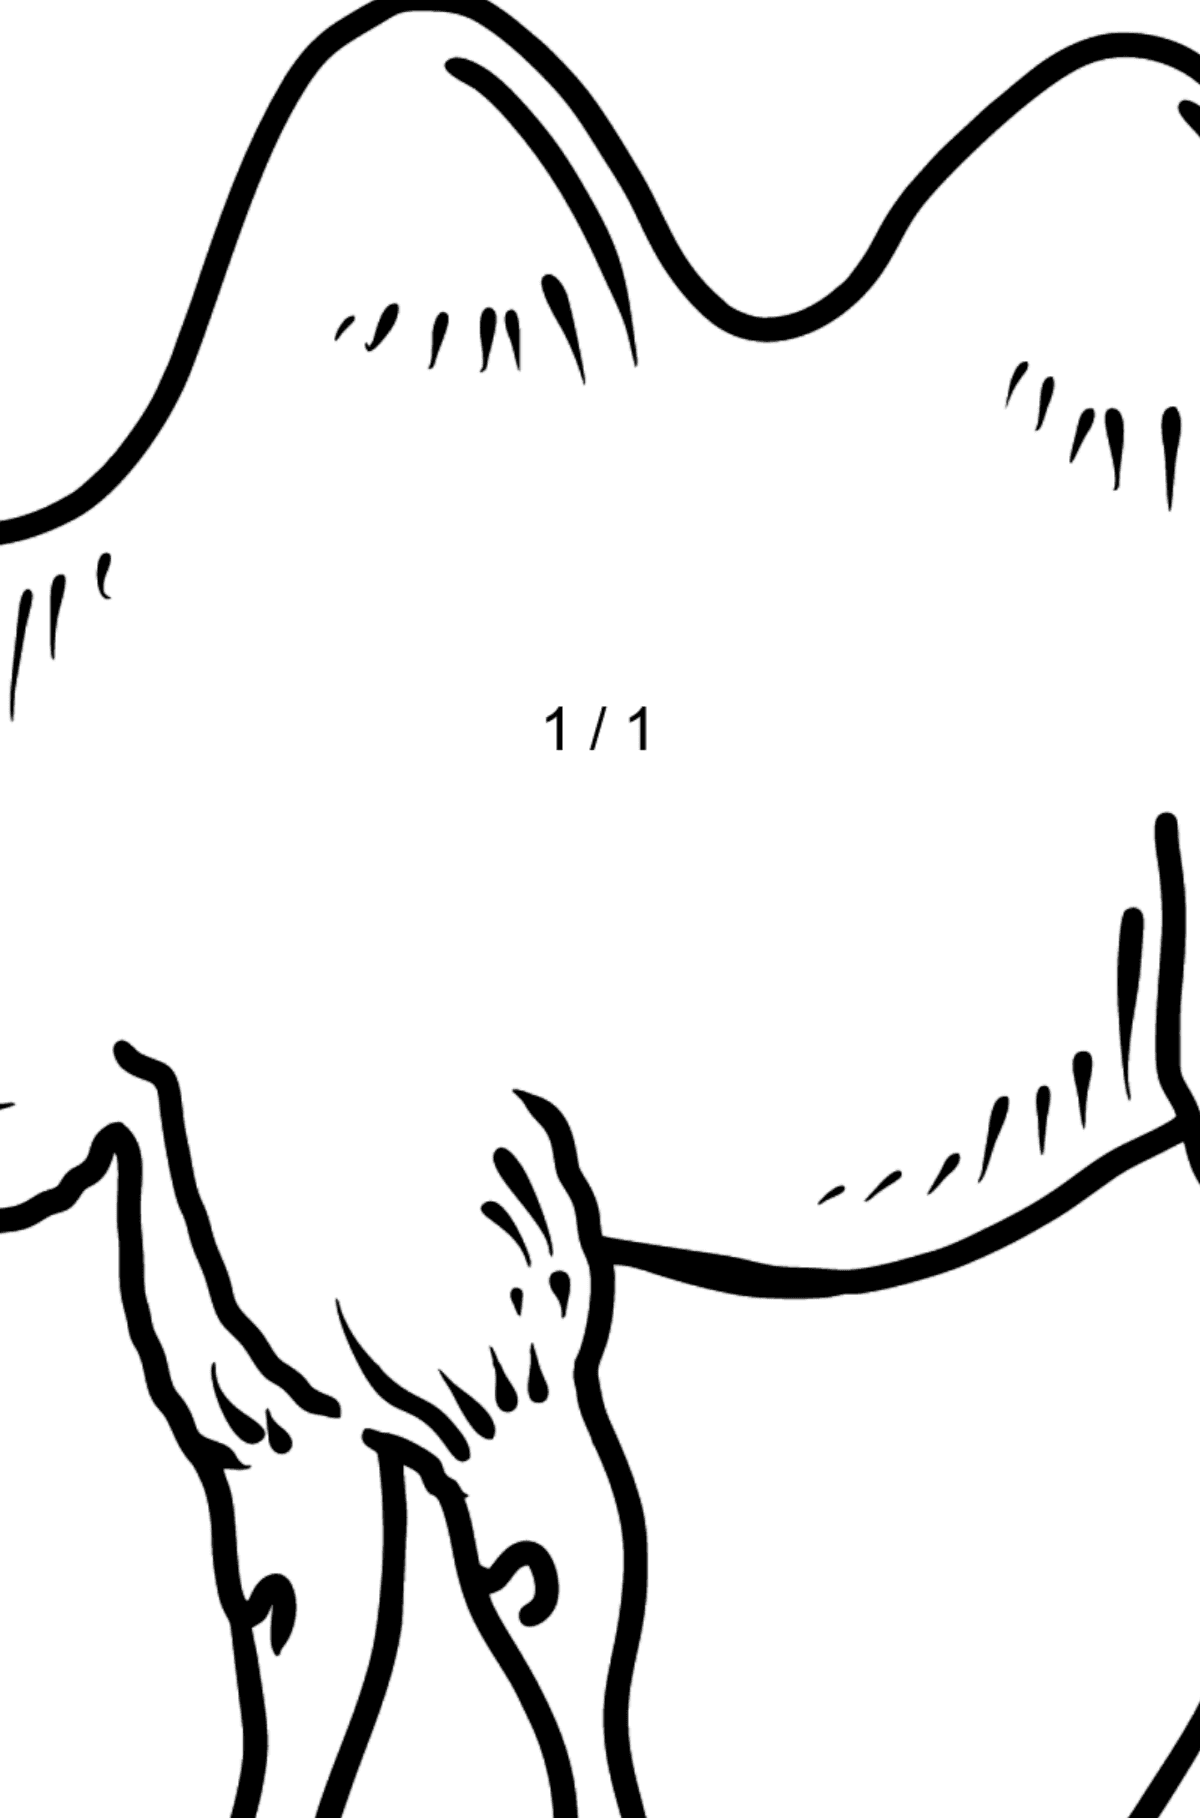 Camel coloring page - Math Coloring - Division for Kids